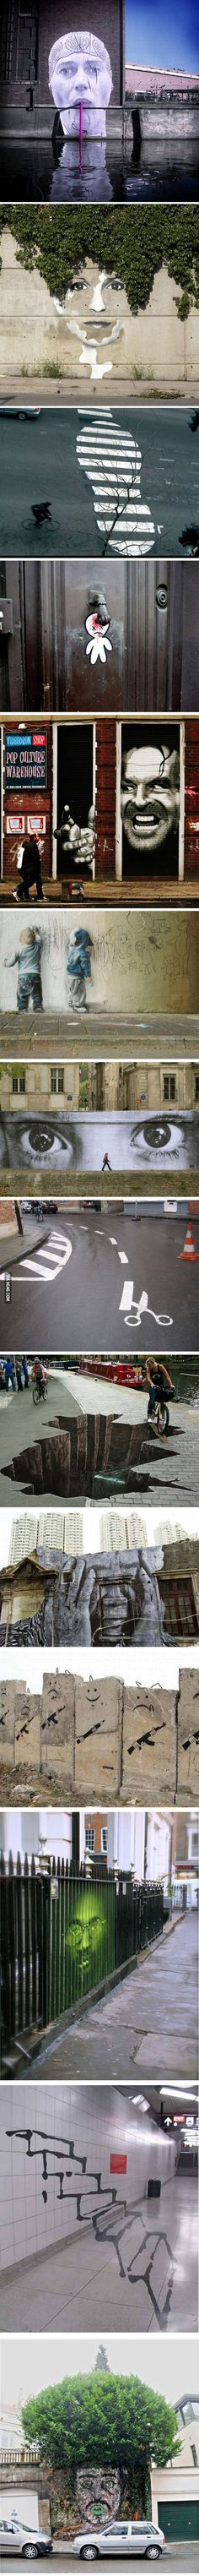 City art at its best - 9GAG